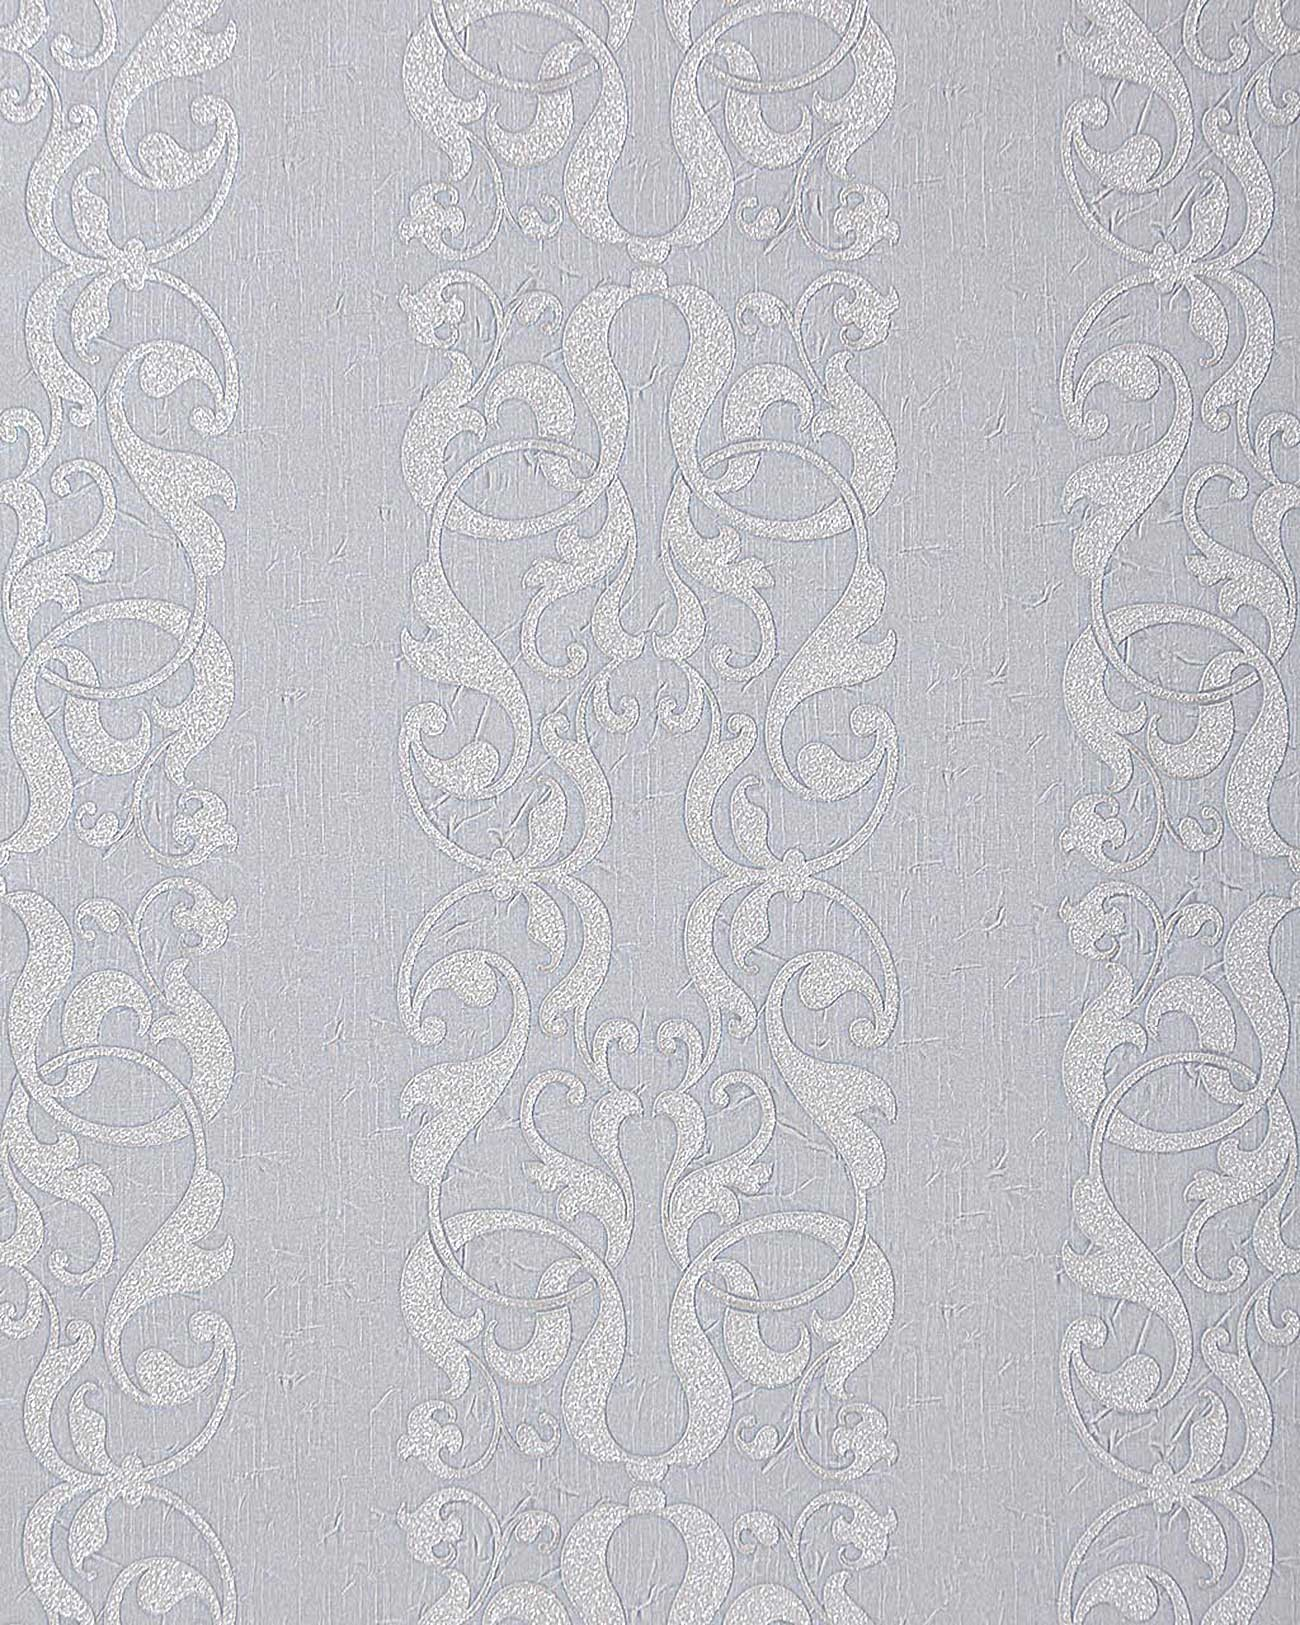 edem 829 20 barock streifen tapete damask muster hell grau silber grau 70 cm ebay. Black Bedroom Furniture Sets. Home Design Ideas